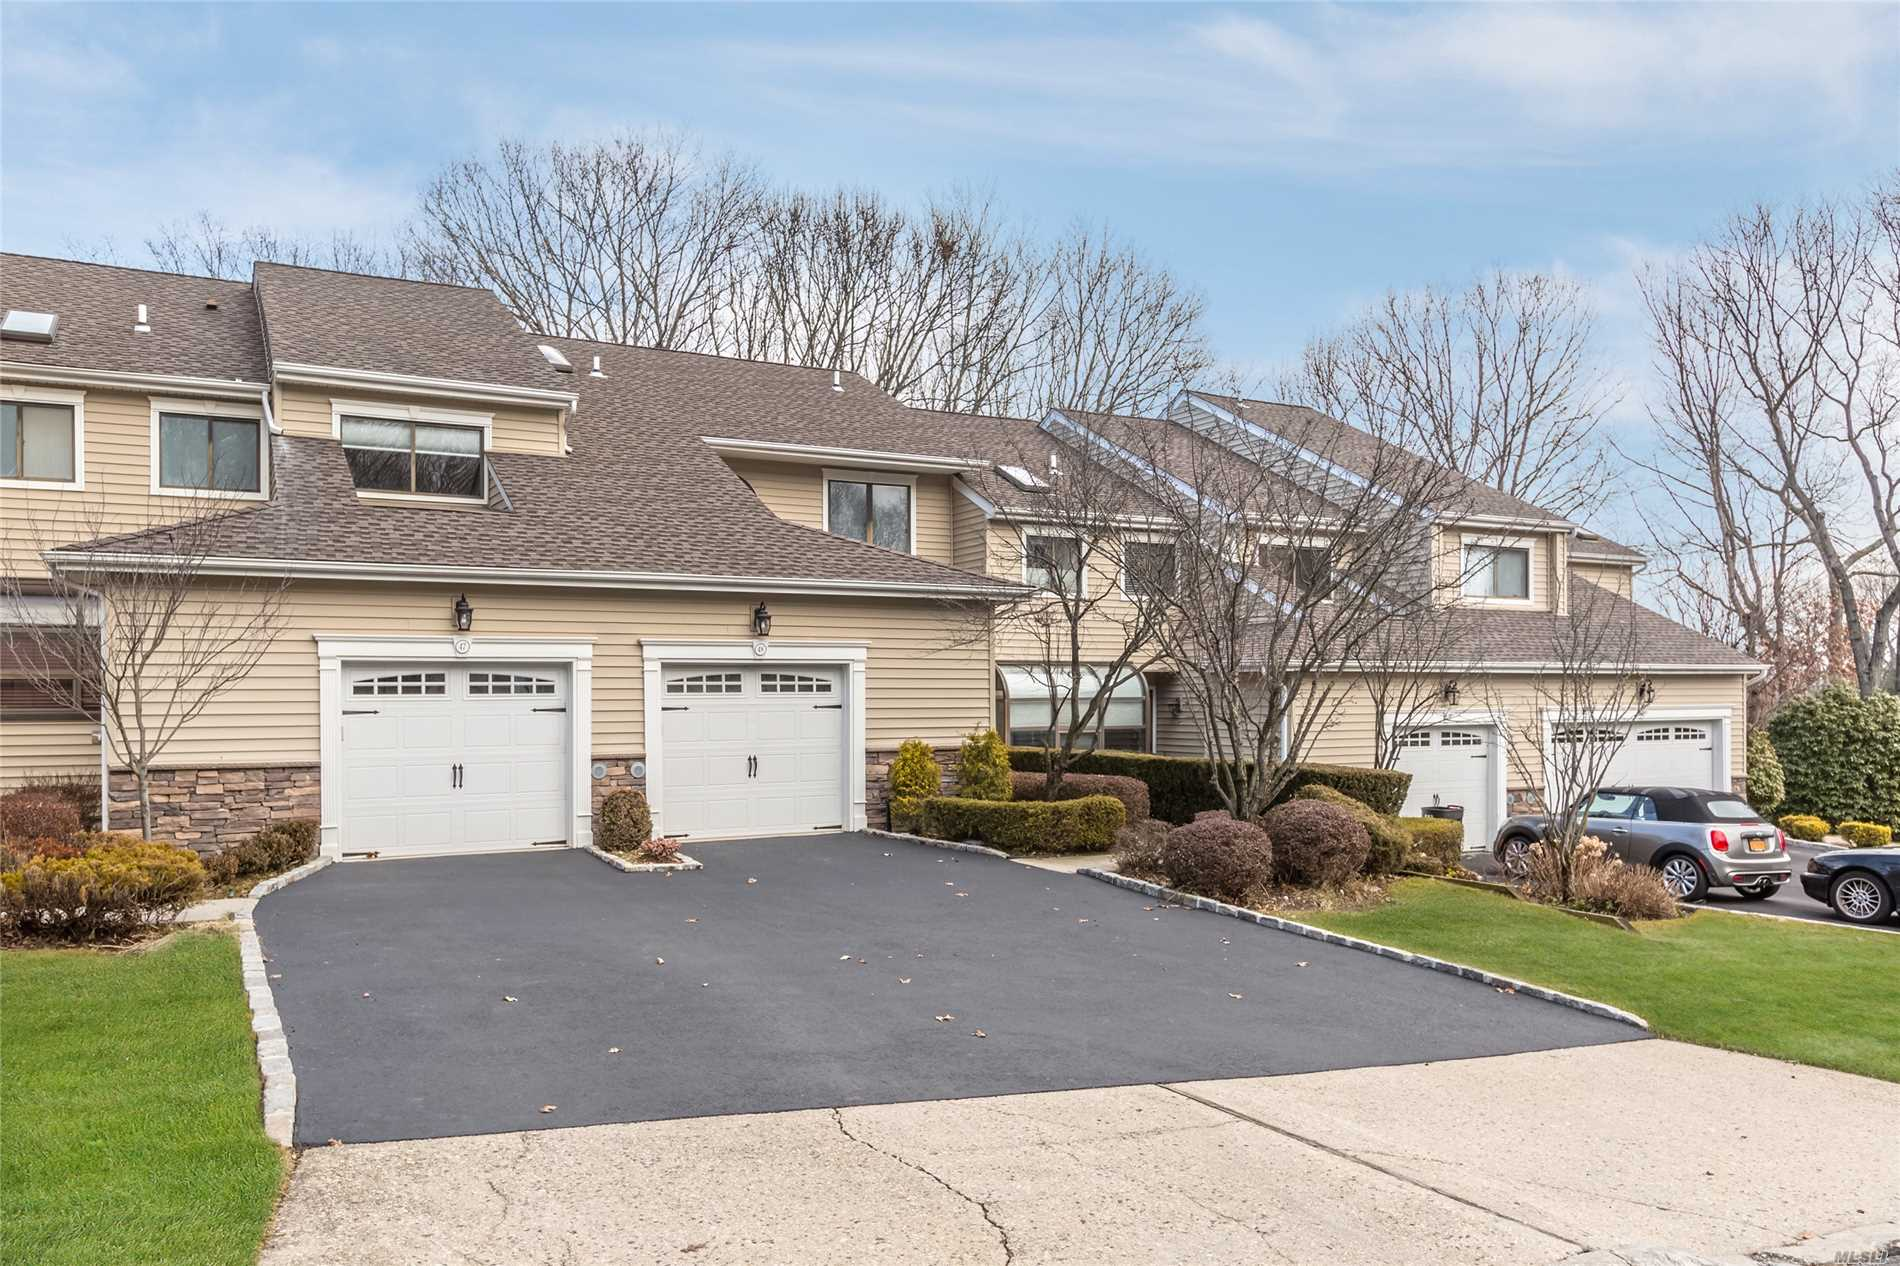 48 Villas Cir - Melville, New York